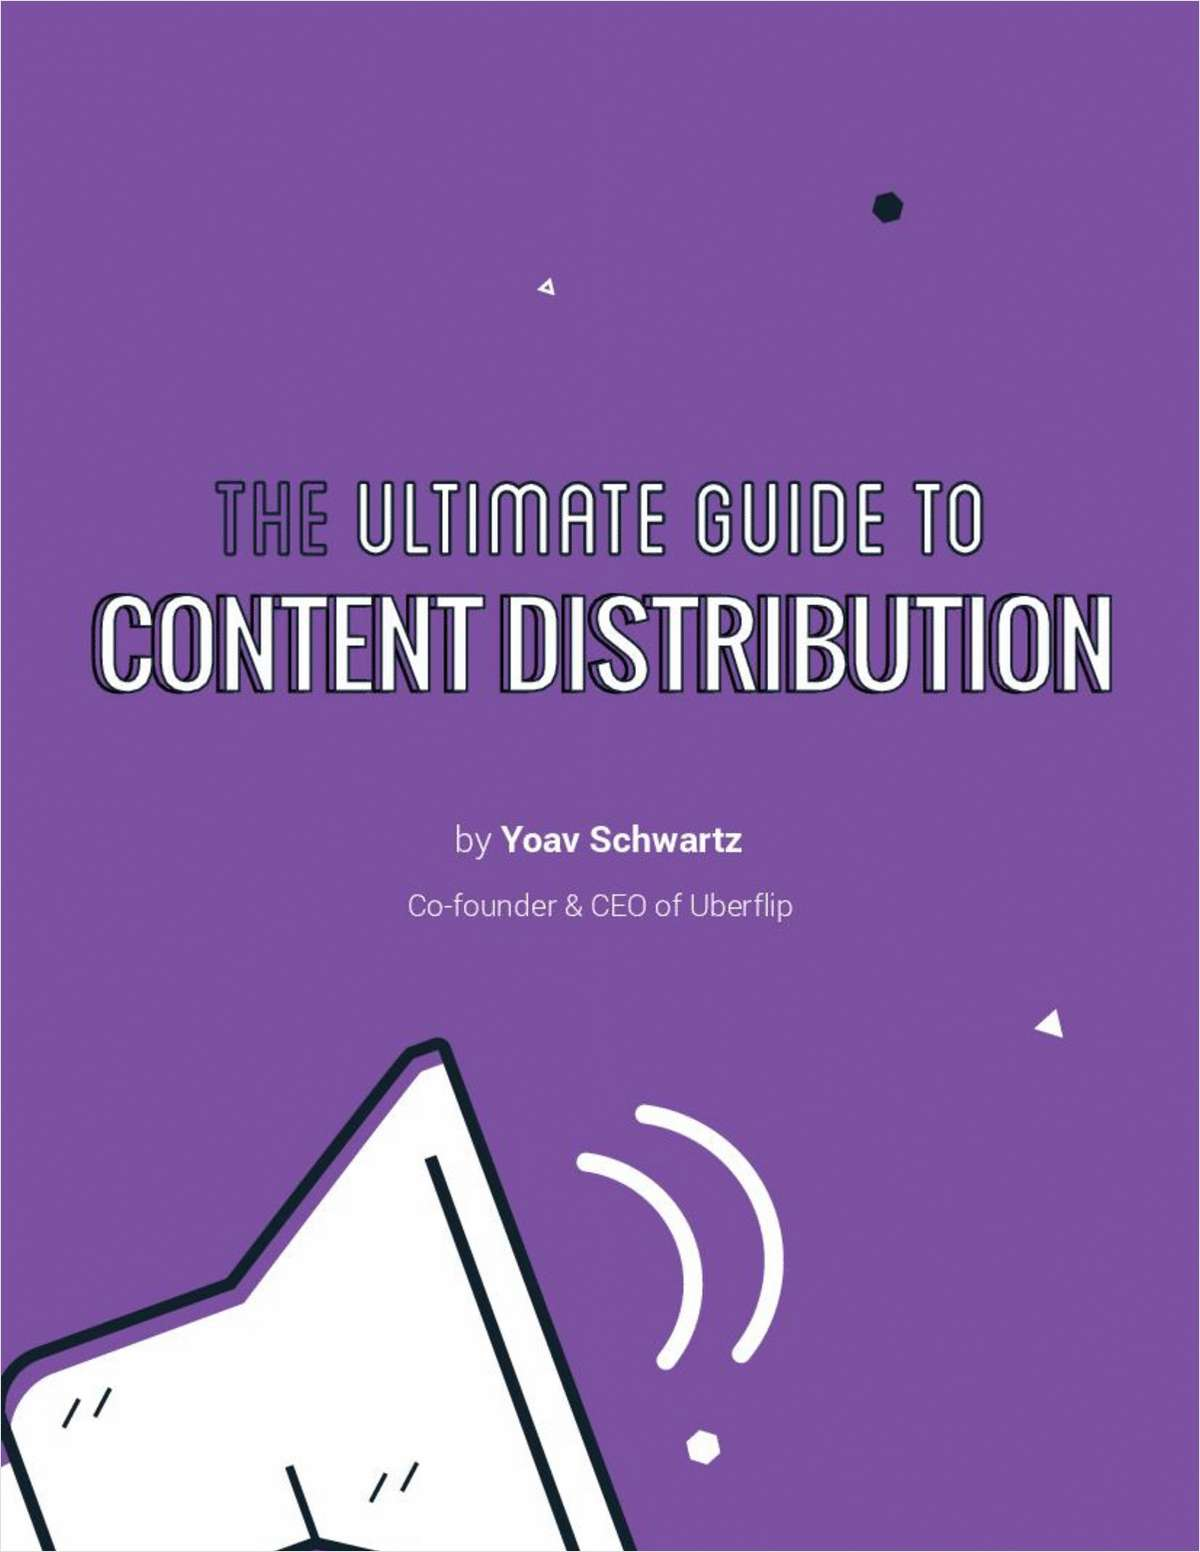 The Ultimate Guide to Content Distribution